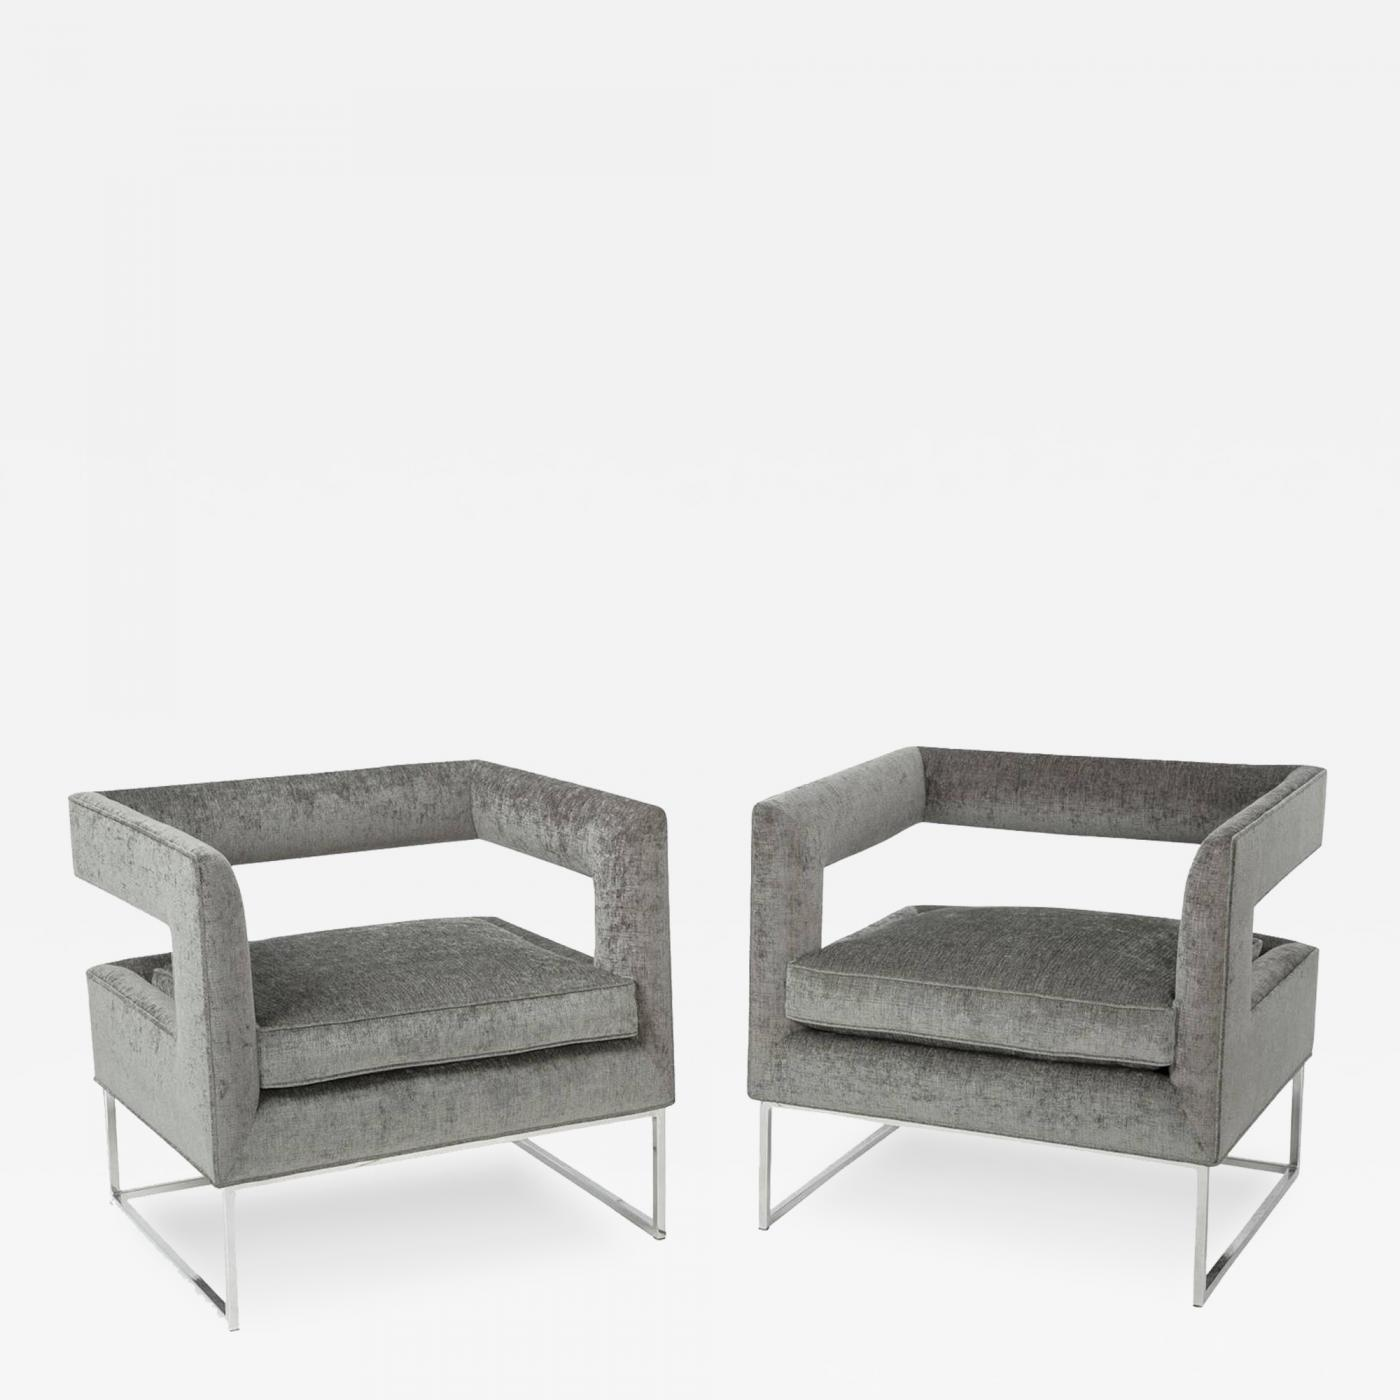 Milo Baughman Floating Cube Chairs by Milo Baughman for Thayer